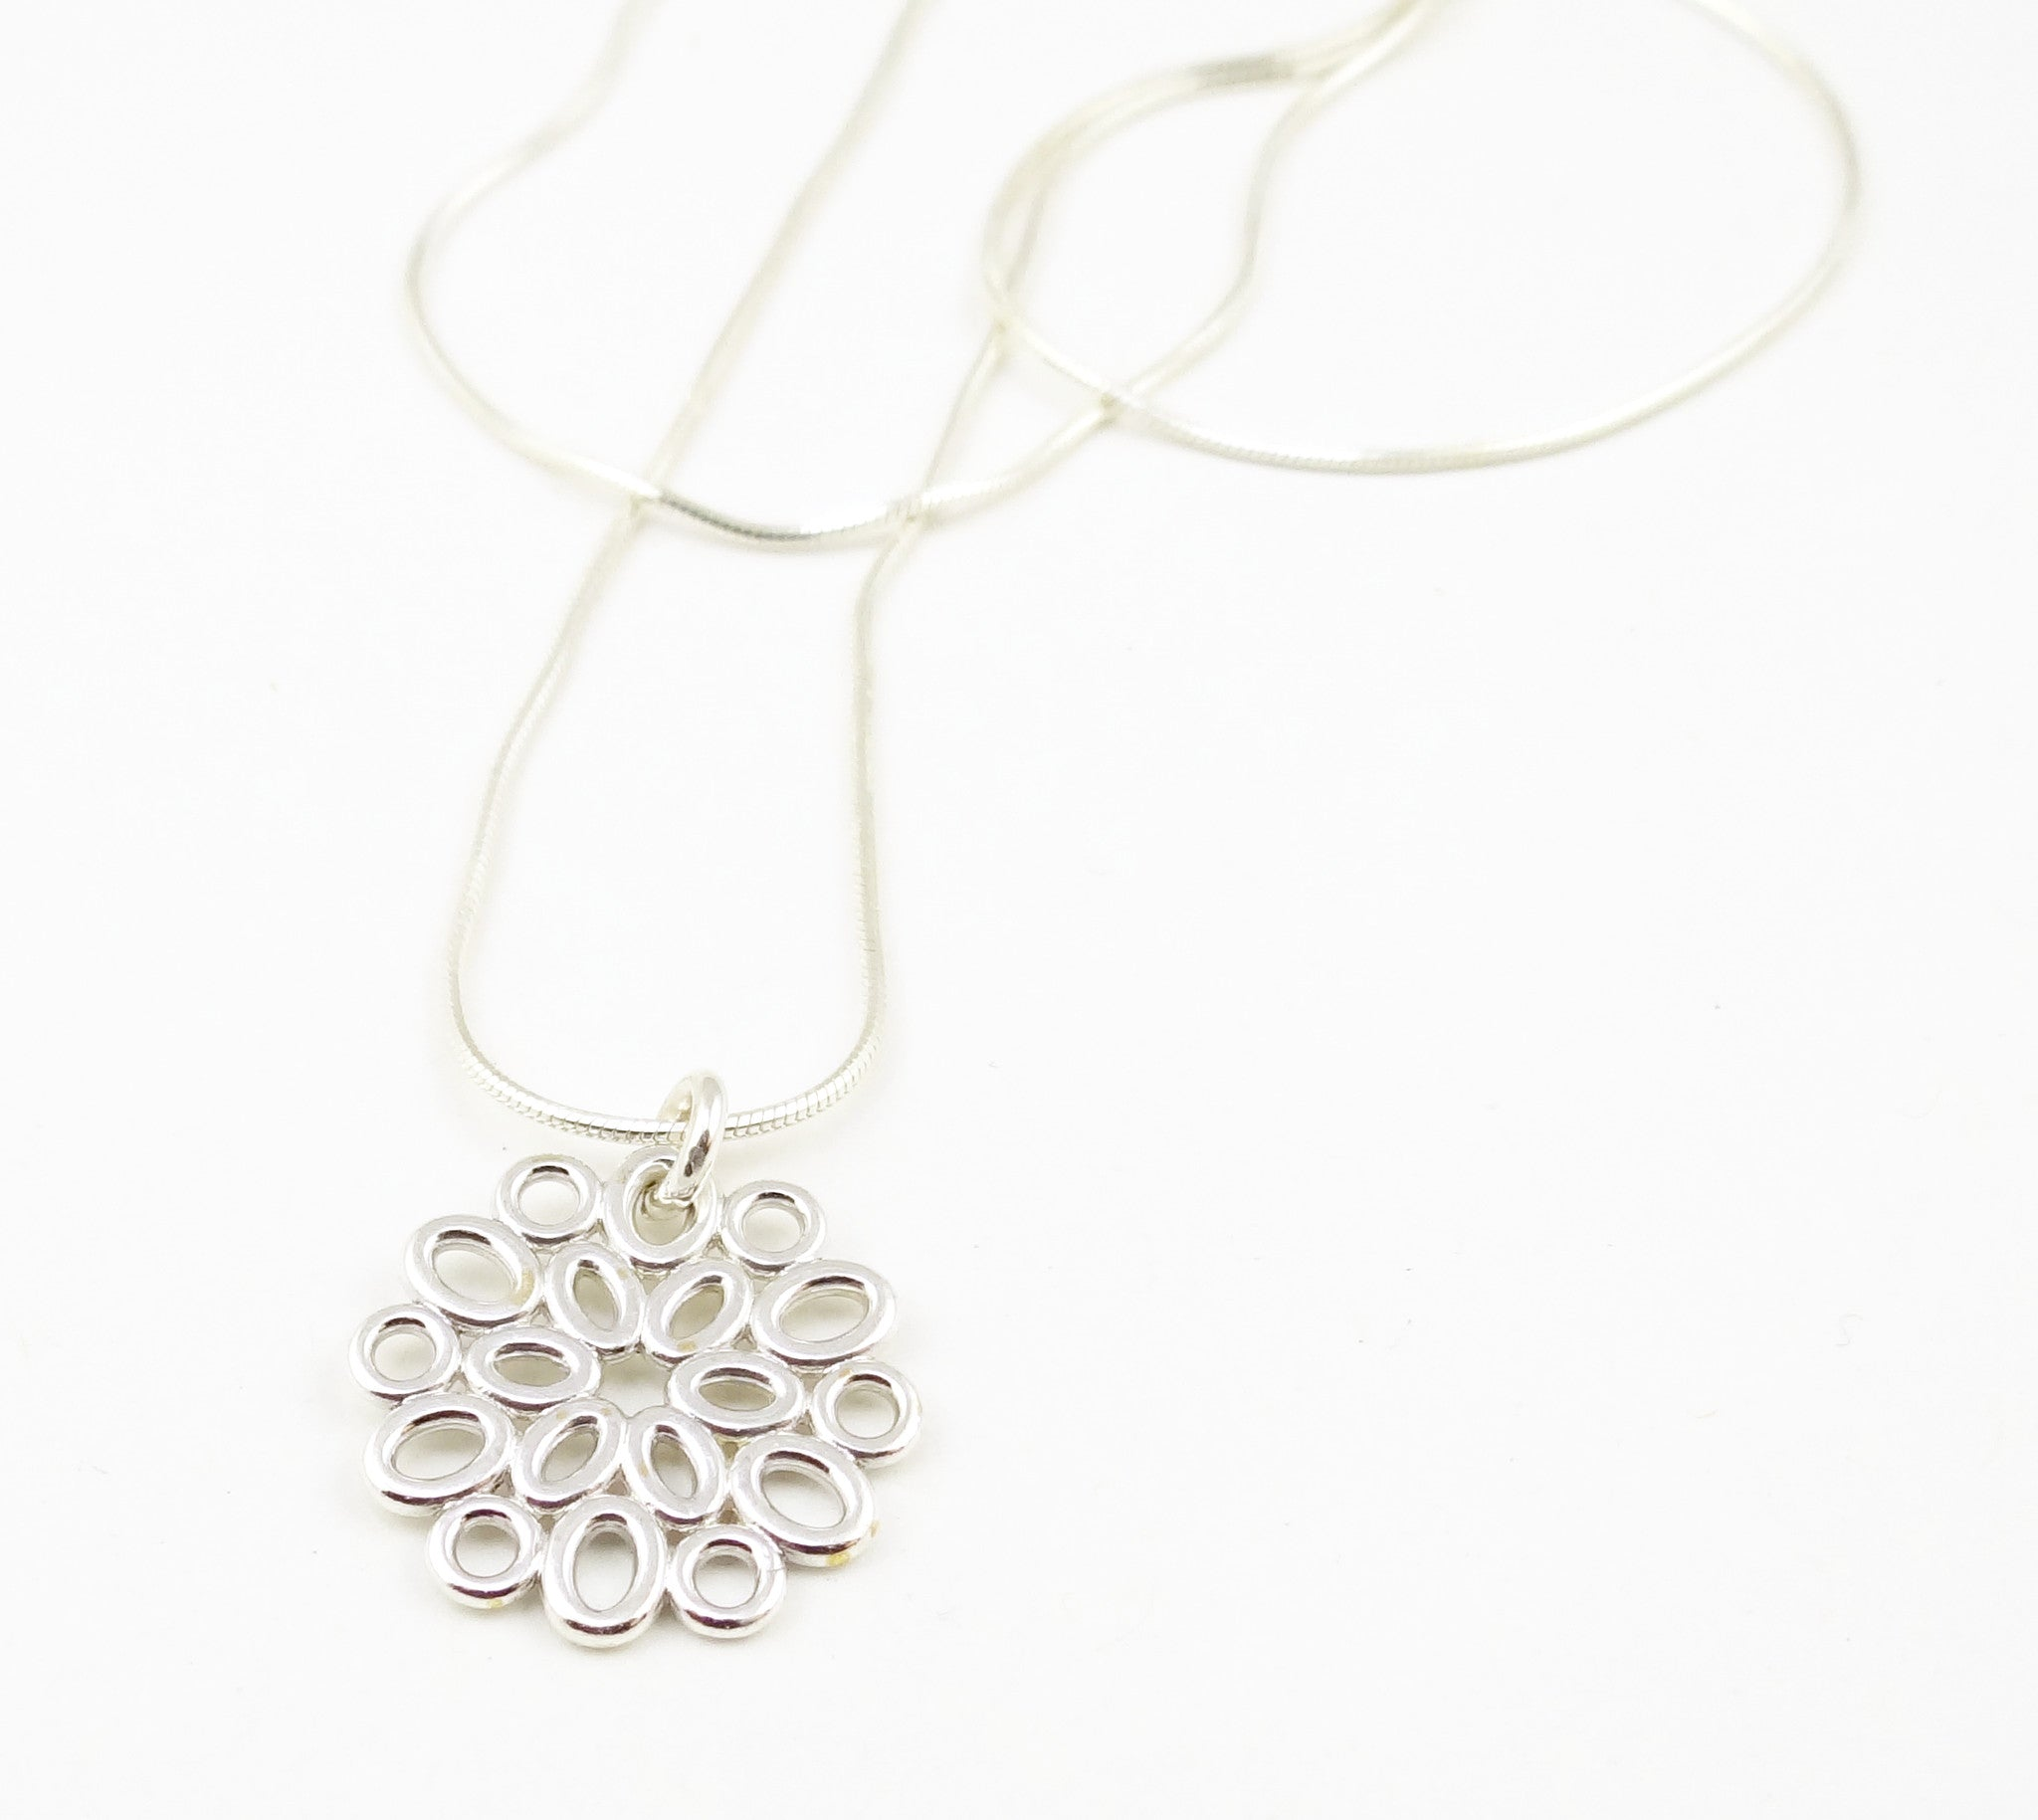 Geometric Sterling Ovals Flower Necklace